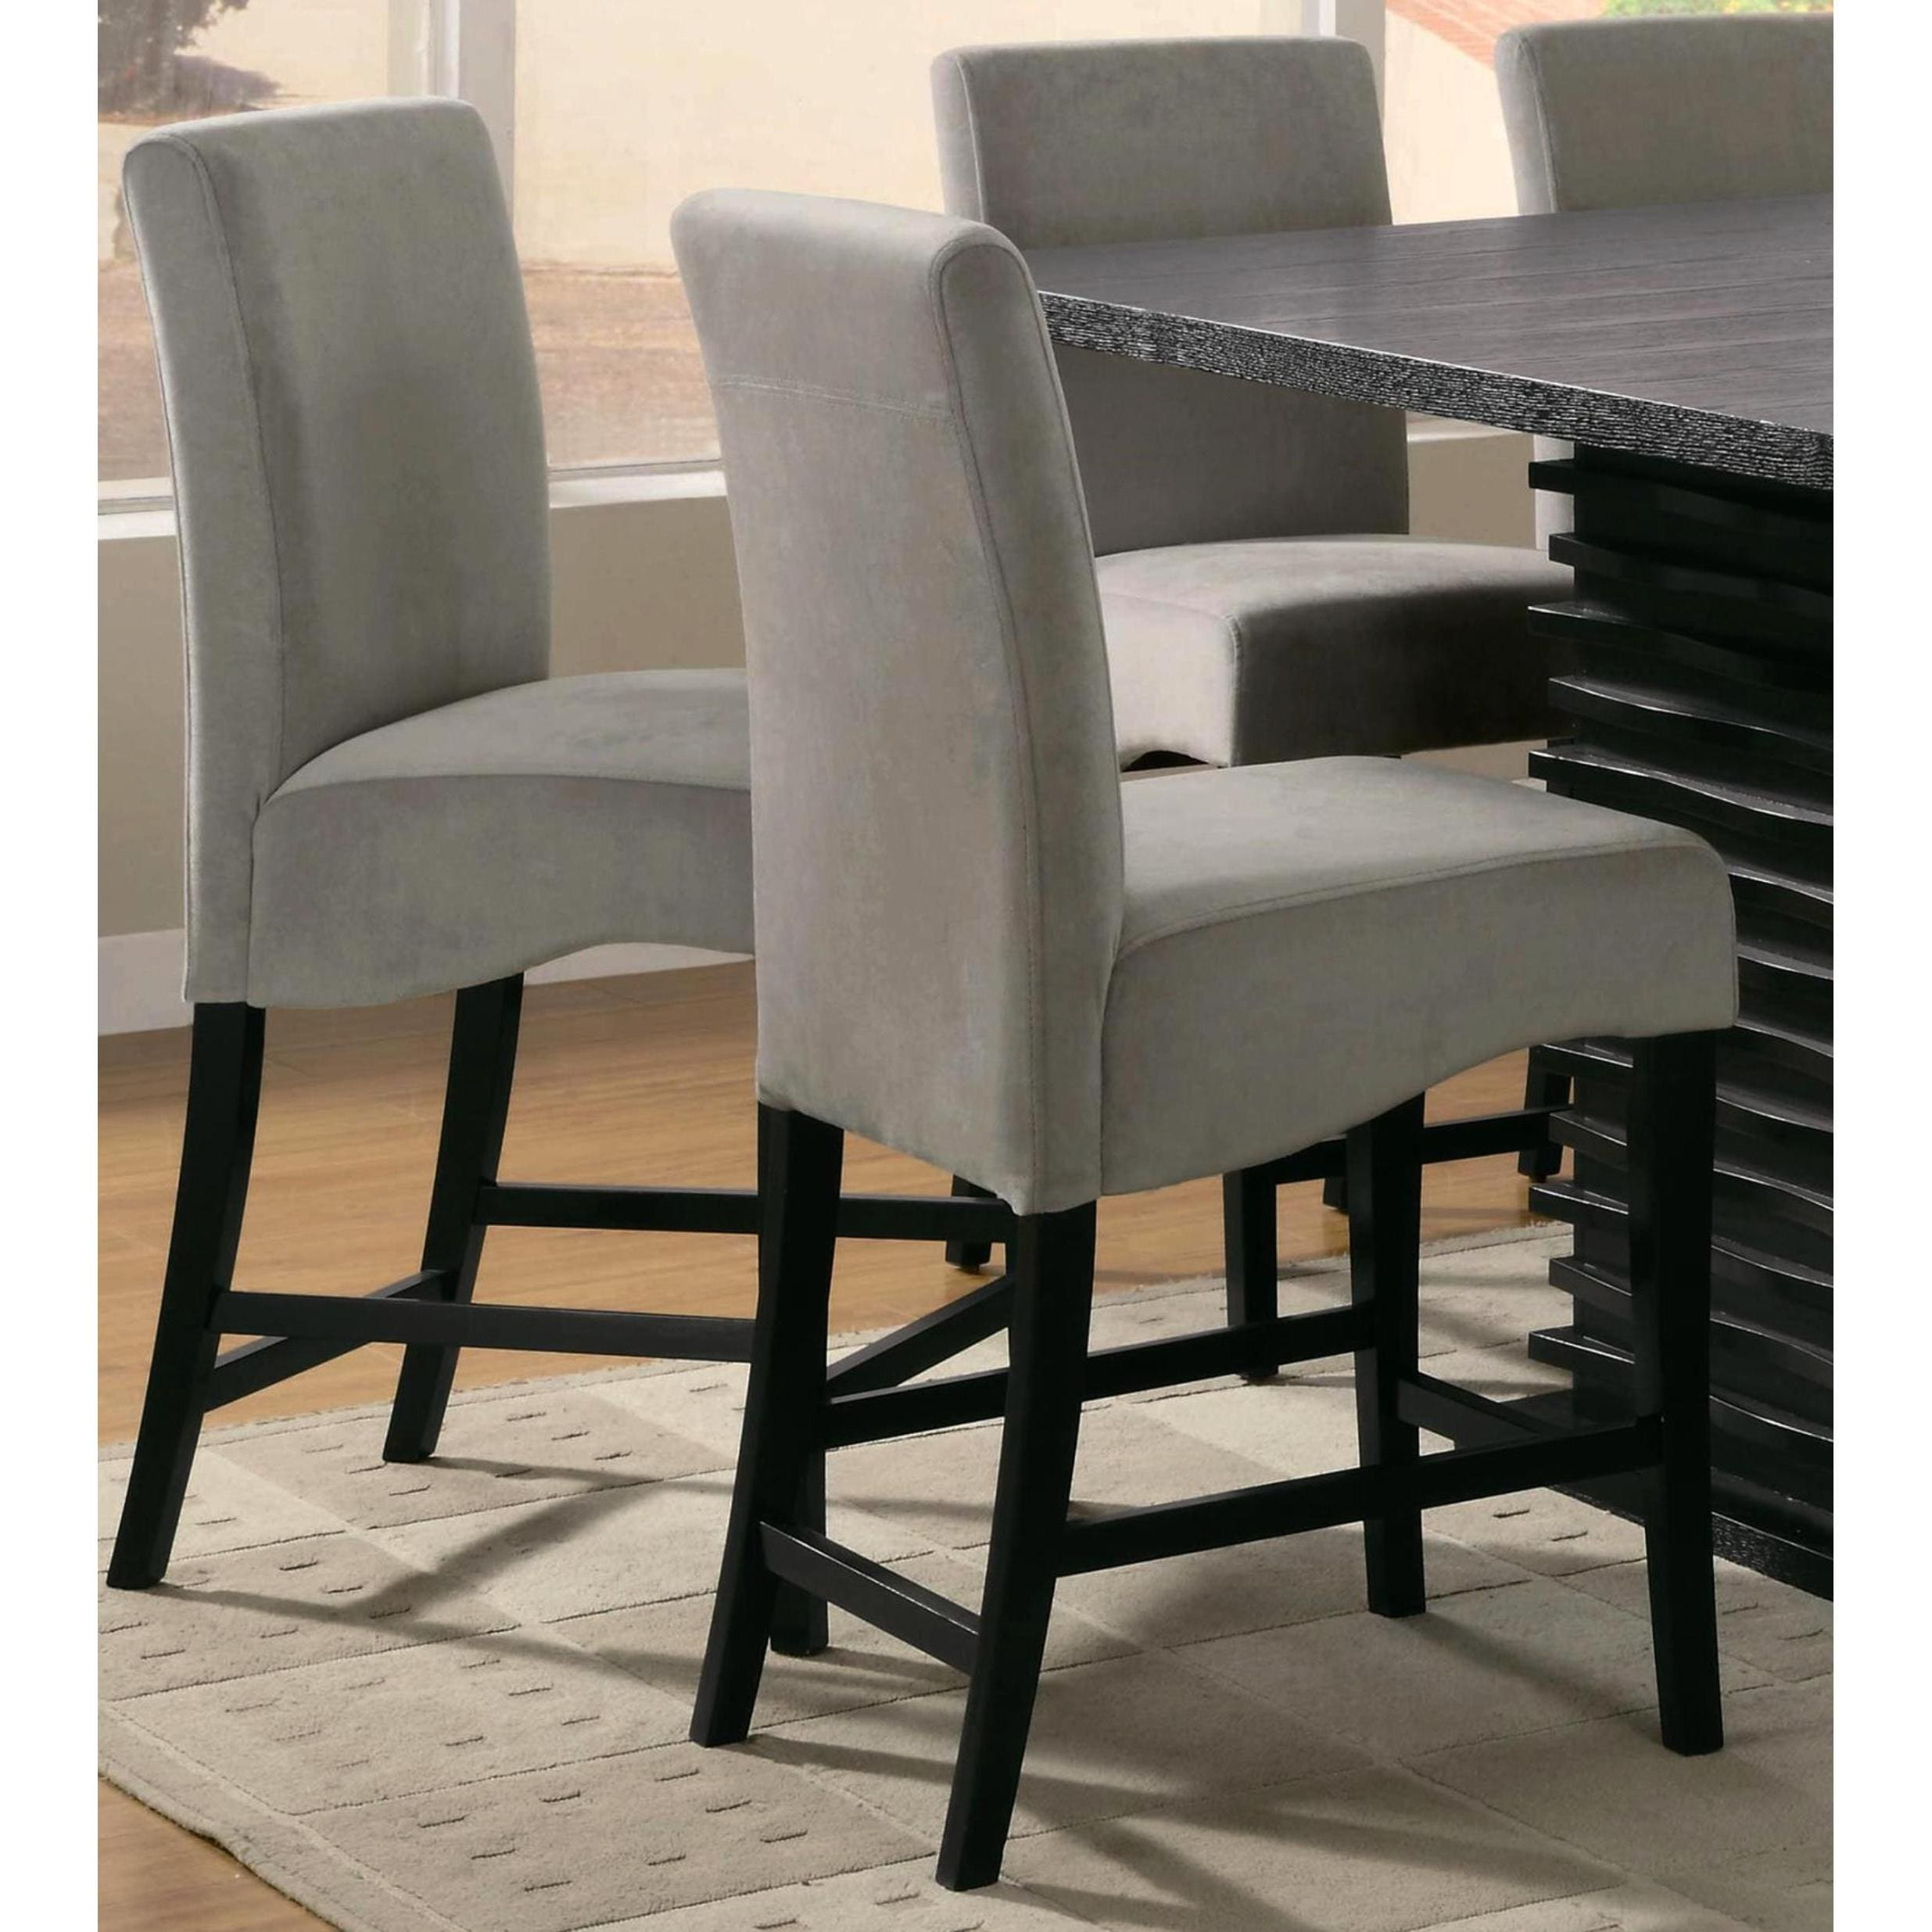 Amazing Bass Modern Black Dazzling Wave Design Grey Upholstered Counter Height Dining  Set   Free Shipping Today   Overstock.com   18378046